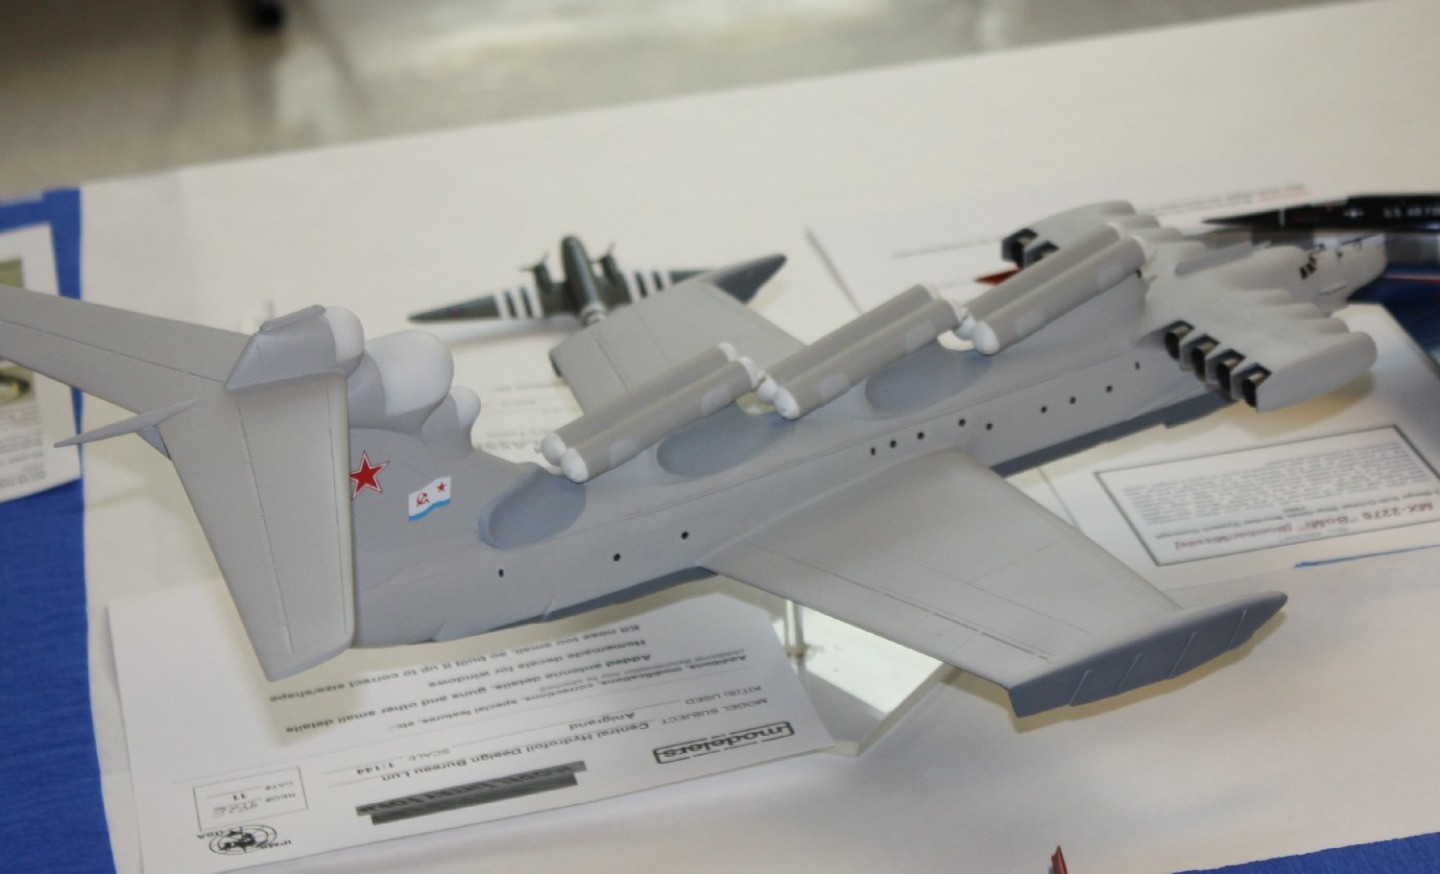 'Wing In Groundeffect; carrier killer